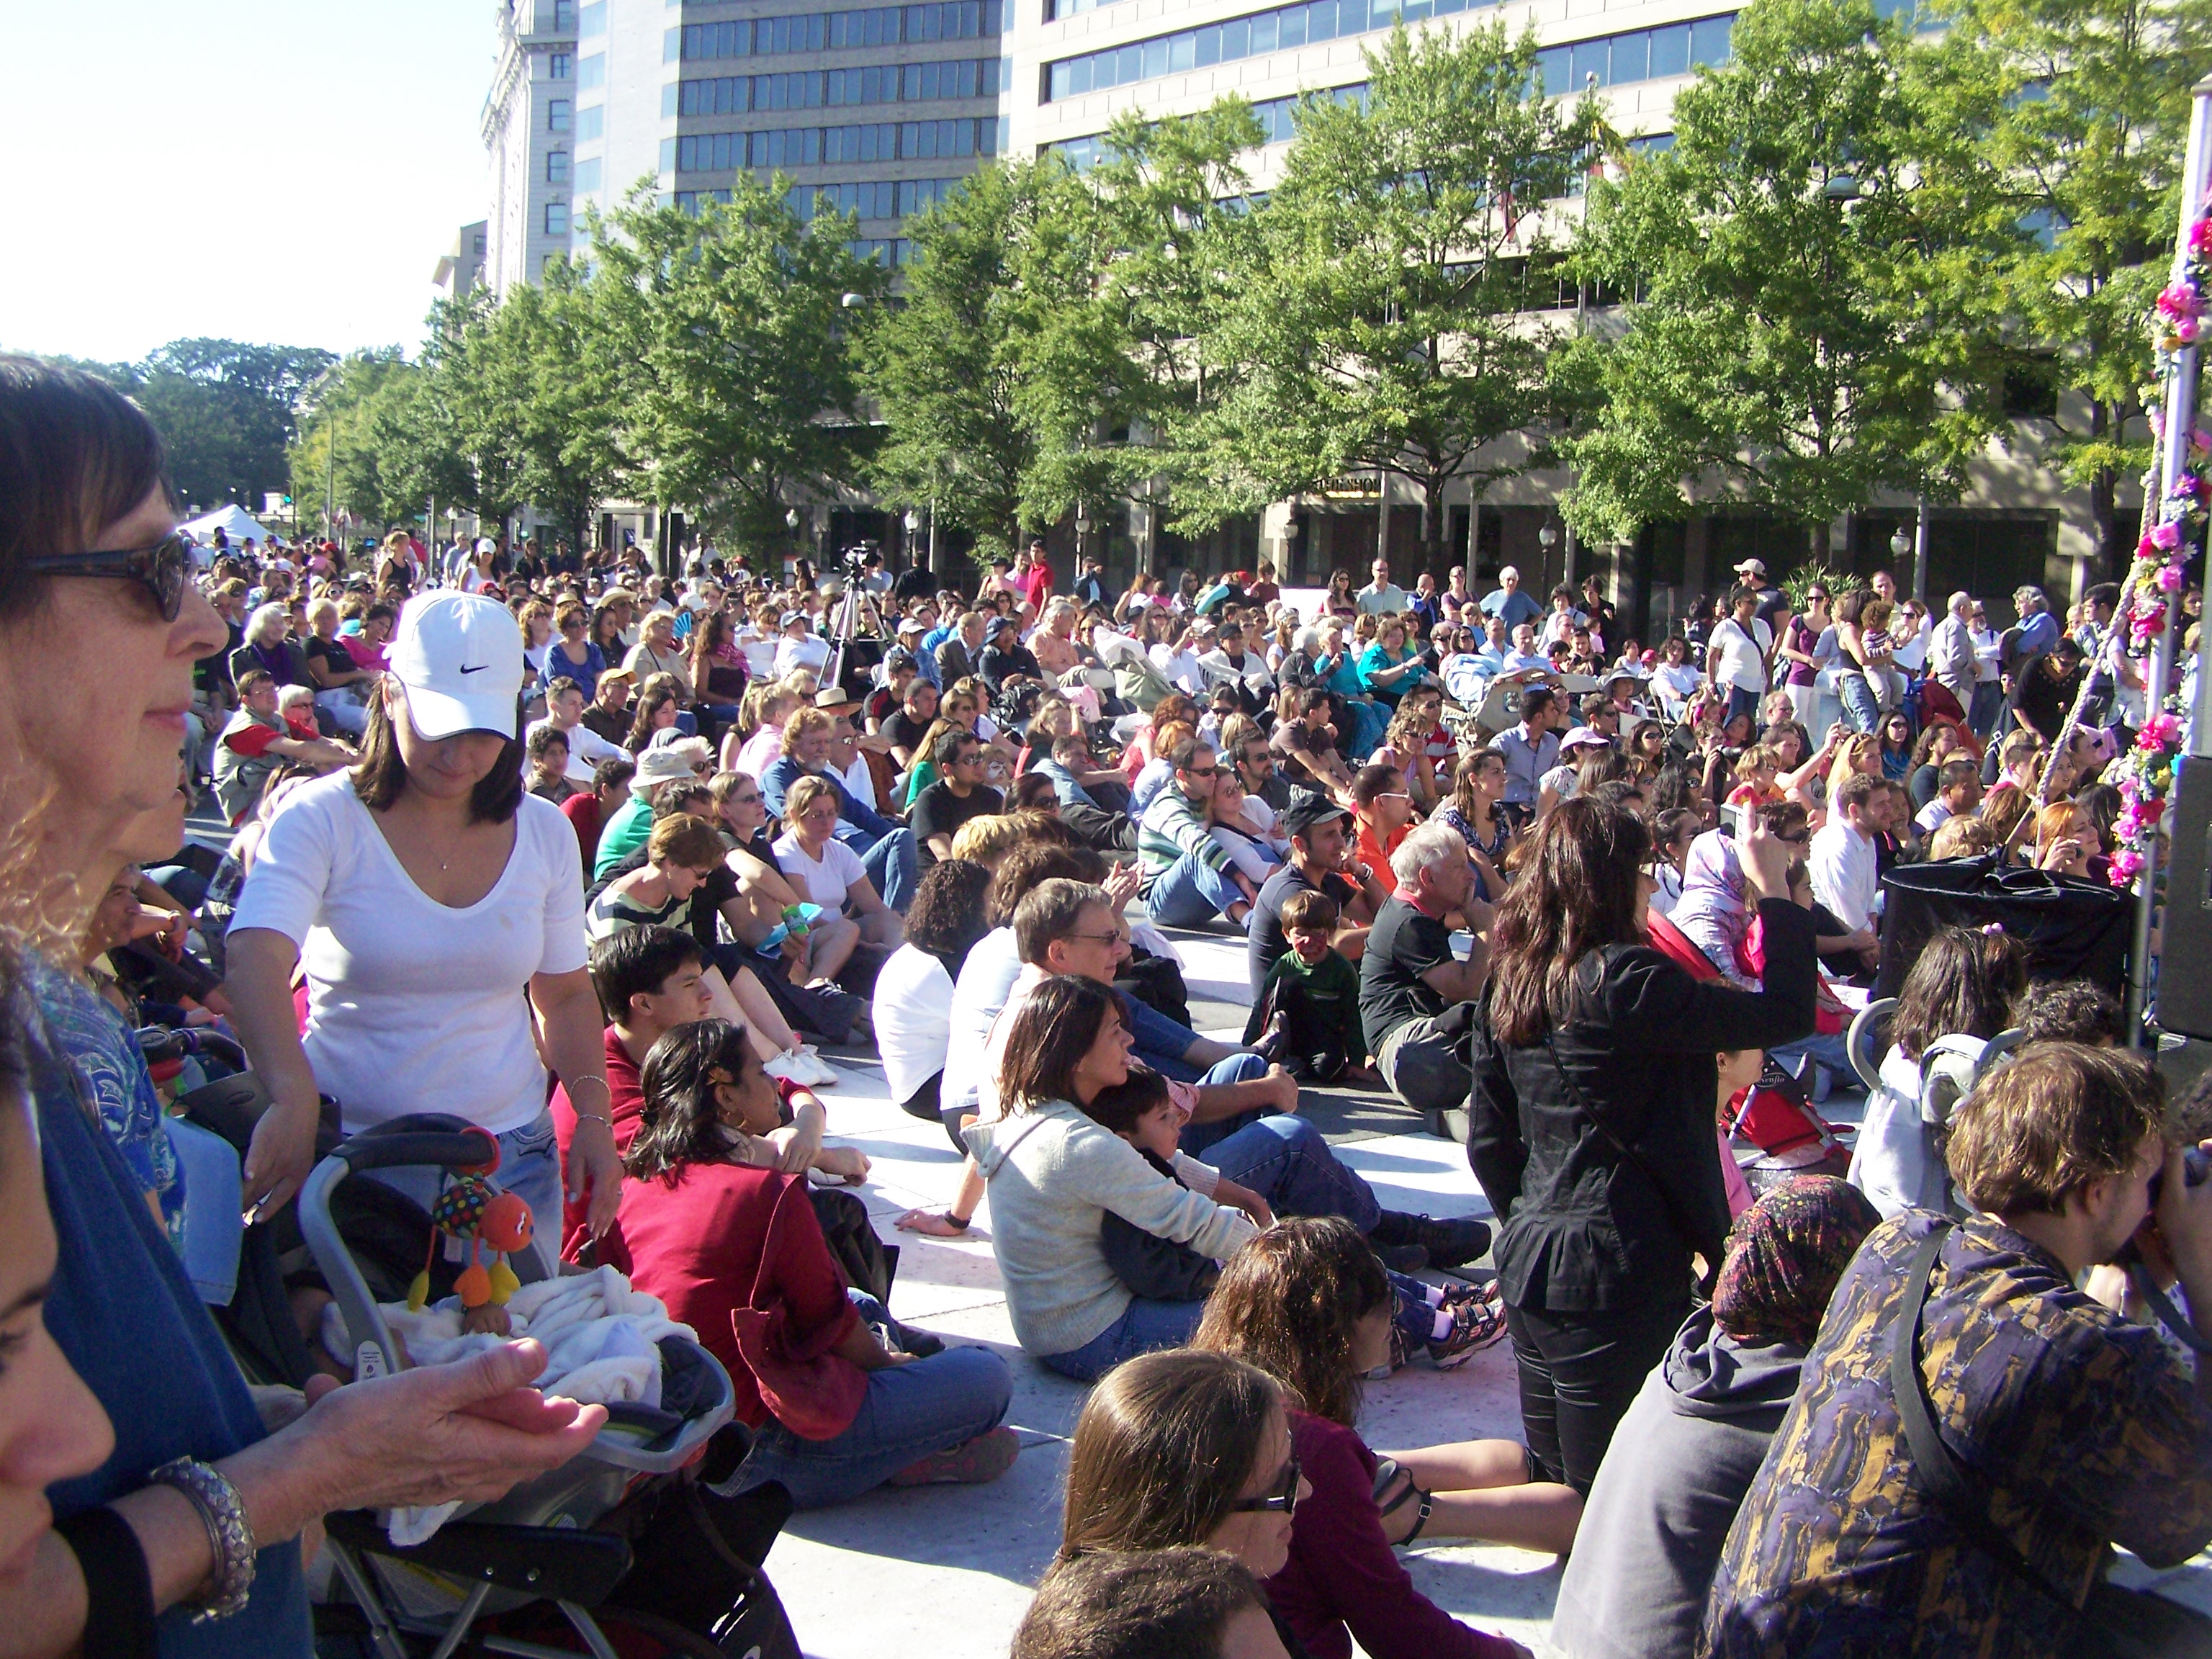 Arabic festival in the United States